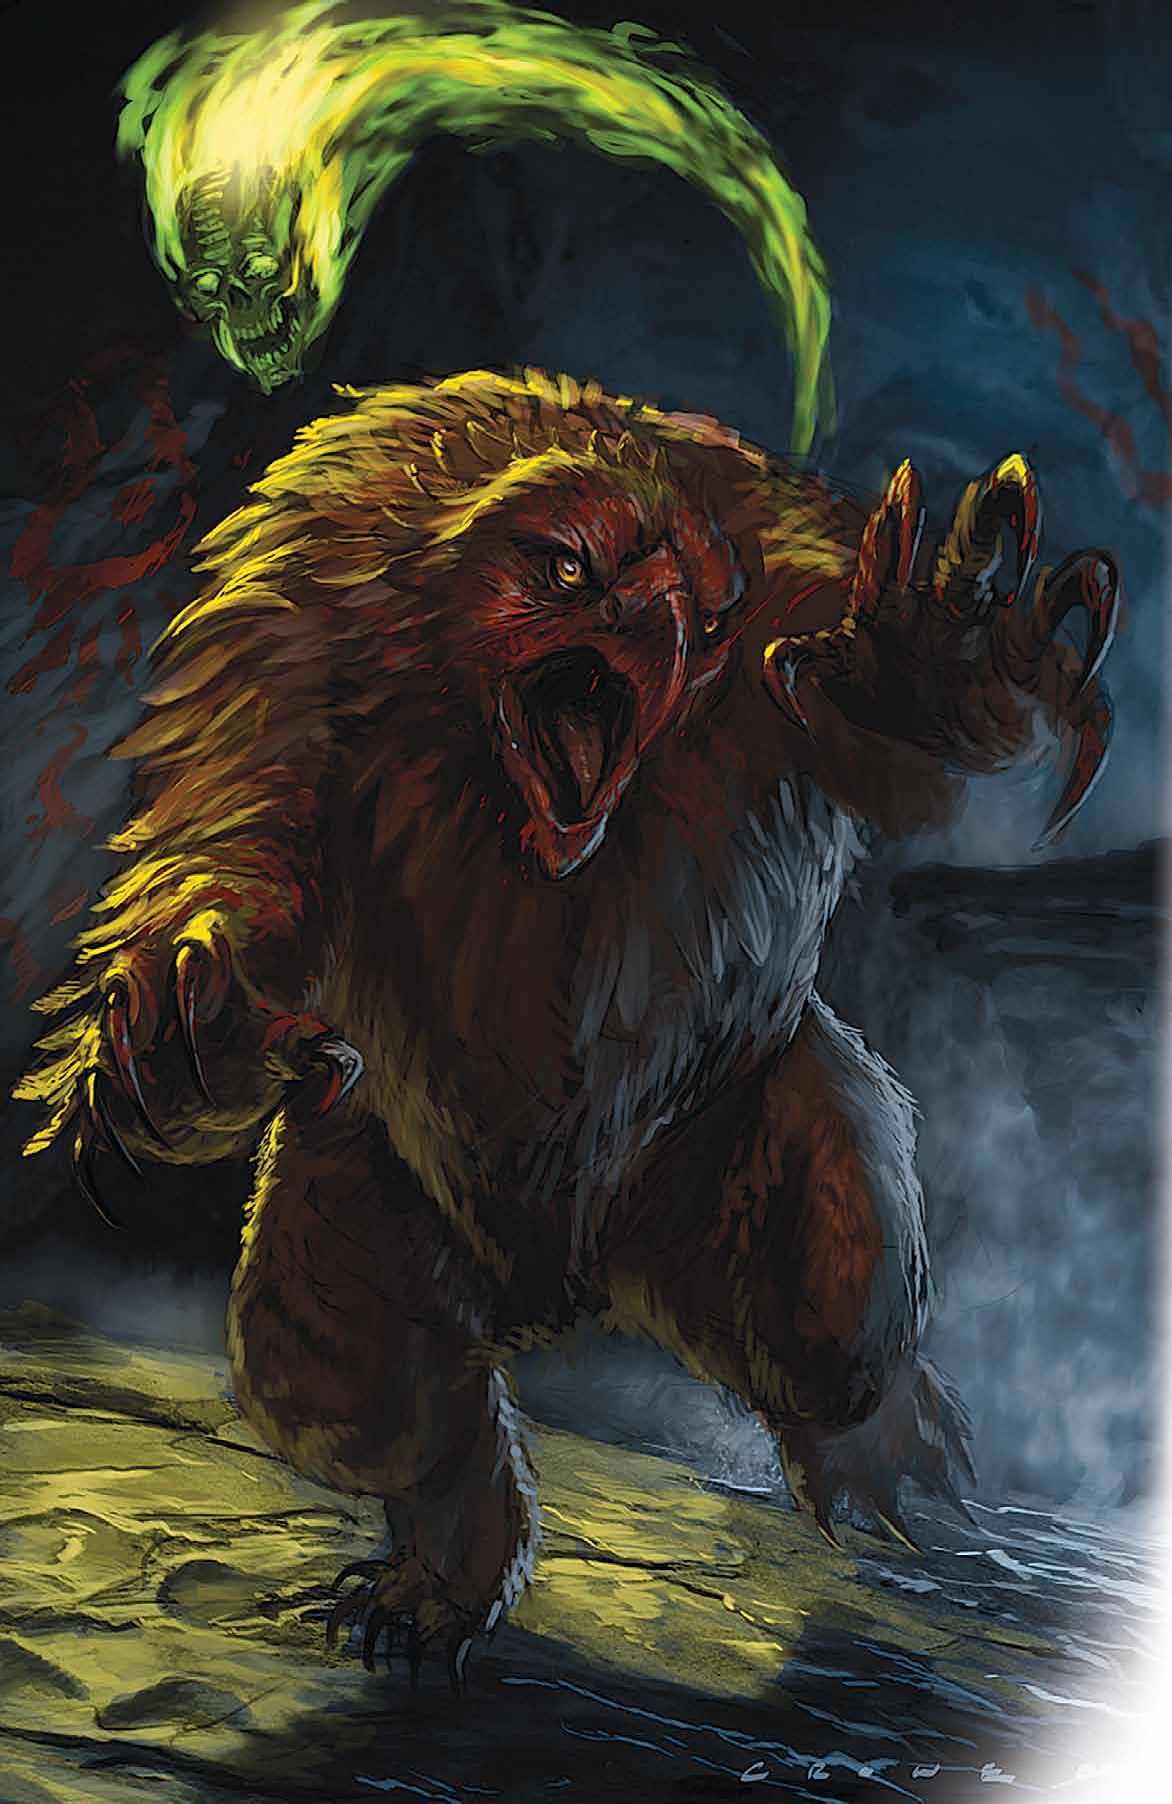 owl bear Orso gufo - by Stephen Crowe Dungeon Magazine #171 (2009-10) © Wizards of the Coast & Hasbro